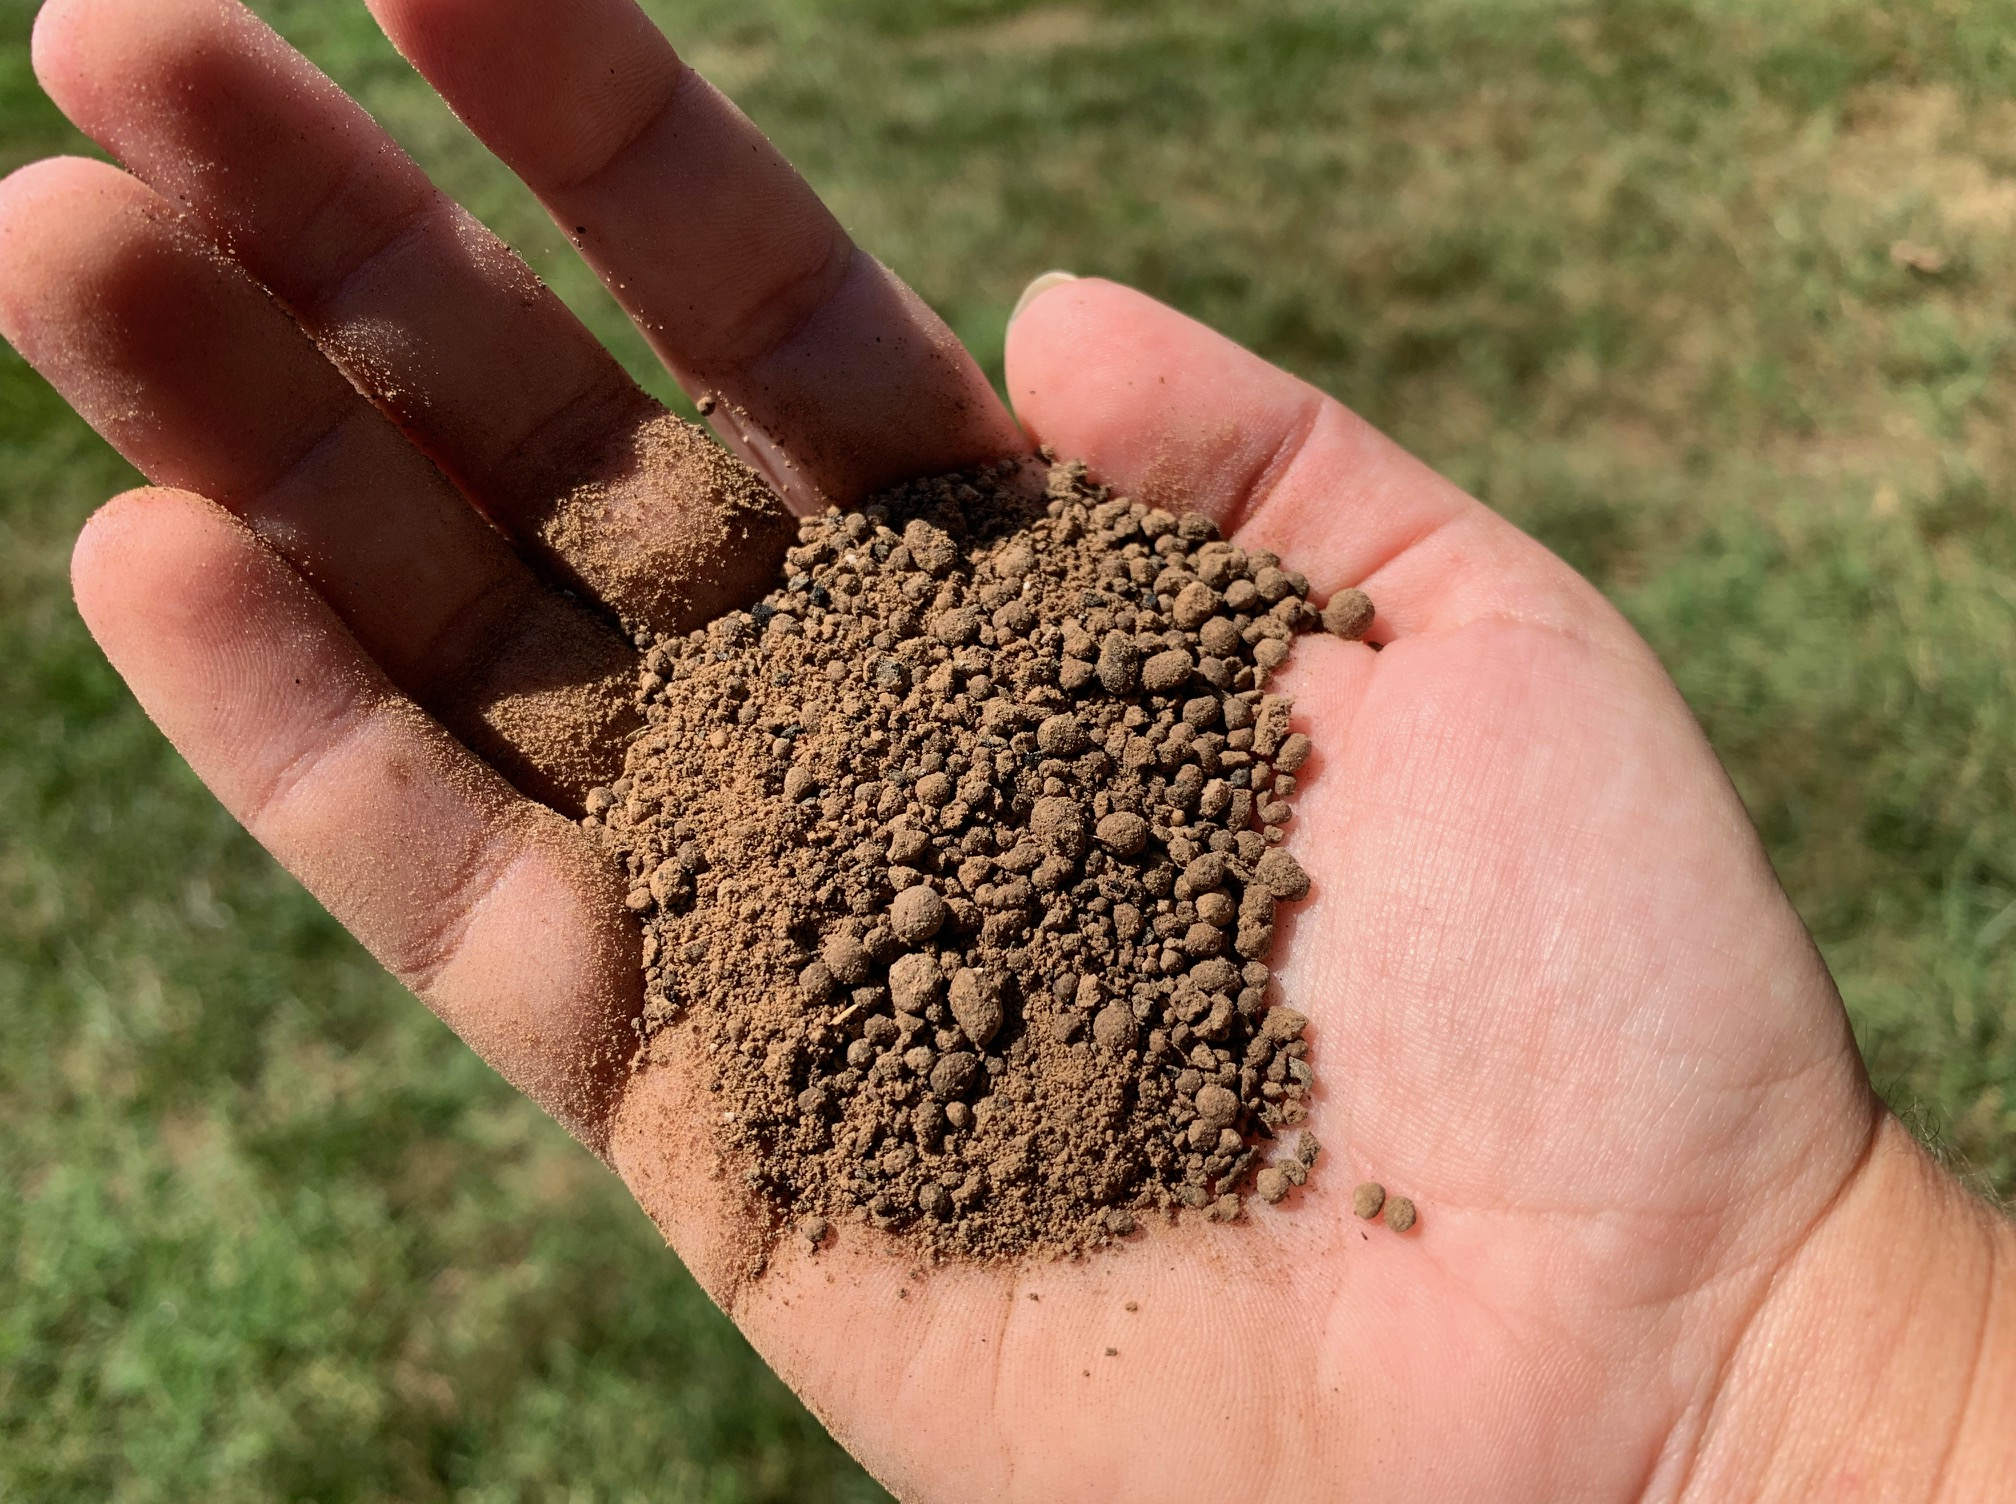 What Does Fertilizer Look Like?